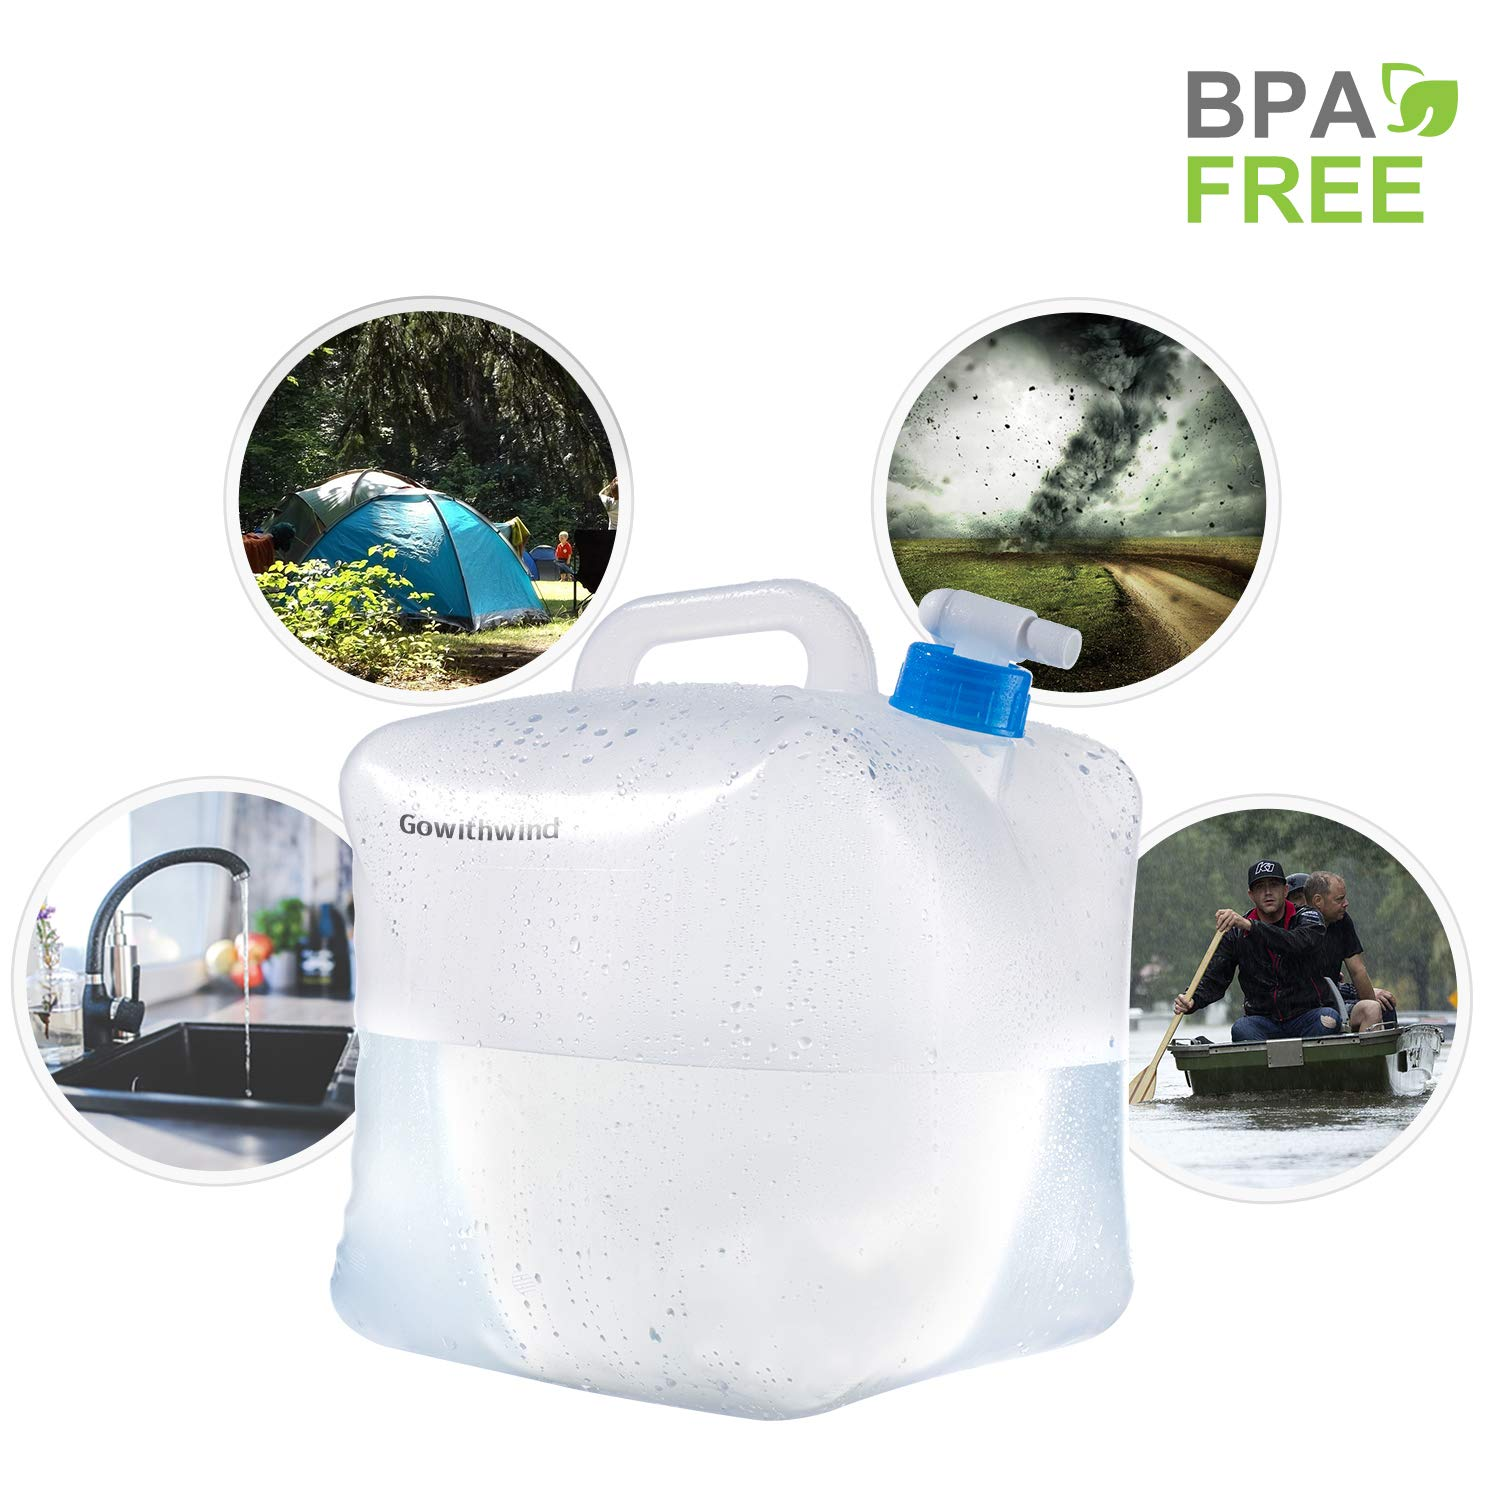 Gowithwind Collapsible Water Container with Spigot,FDA BPA Free Portable Water Carrier,Foldable Water Storage Jug for Outdoor Camping Hiking and Emergency Hurricane Flood Earthquake 1.3//2.6//5.3Gallon